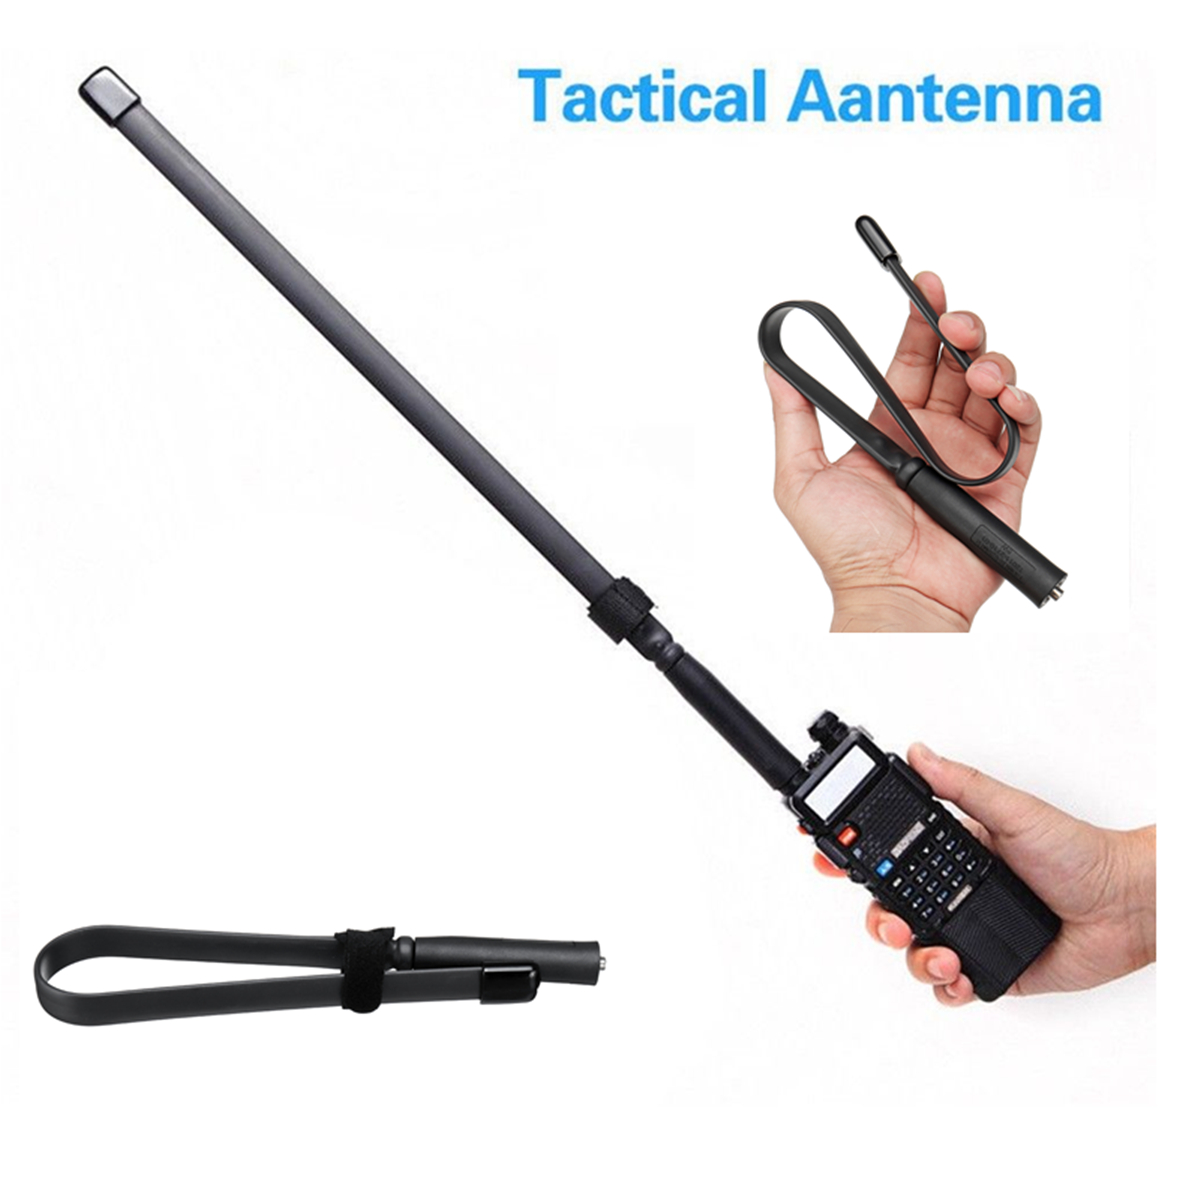 Tactical Antenna SMA-Female Dual Band VHF UHF 144/430Mhz for Baofeng UV-5R/82